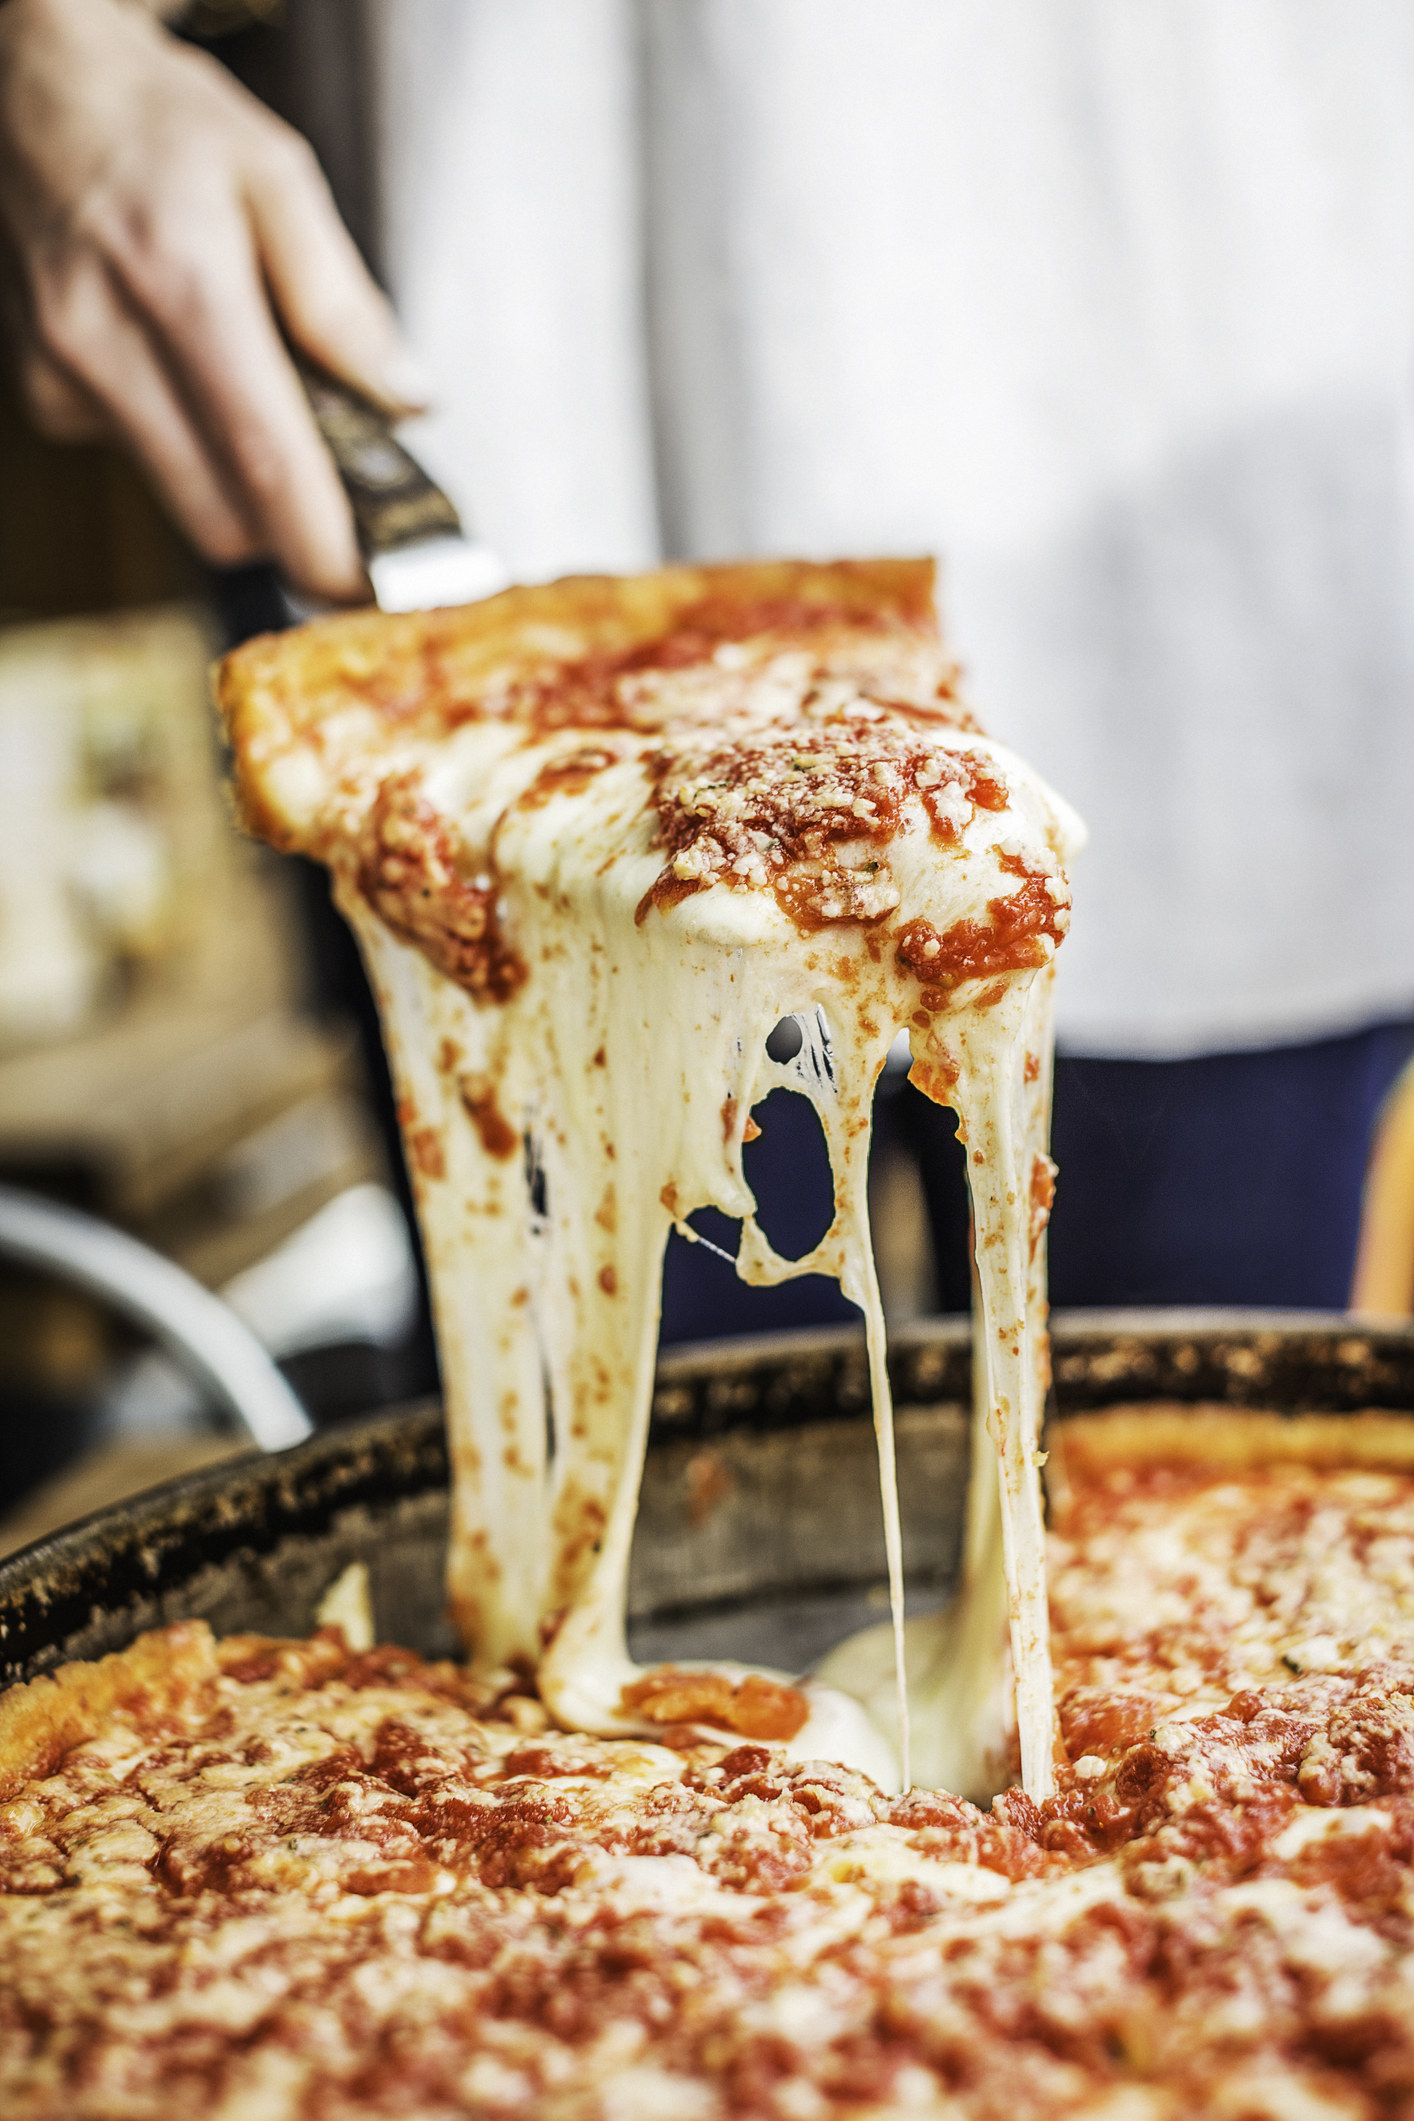 Serving a slice of cheesy, deep dish pizza.